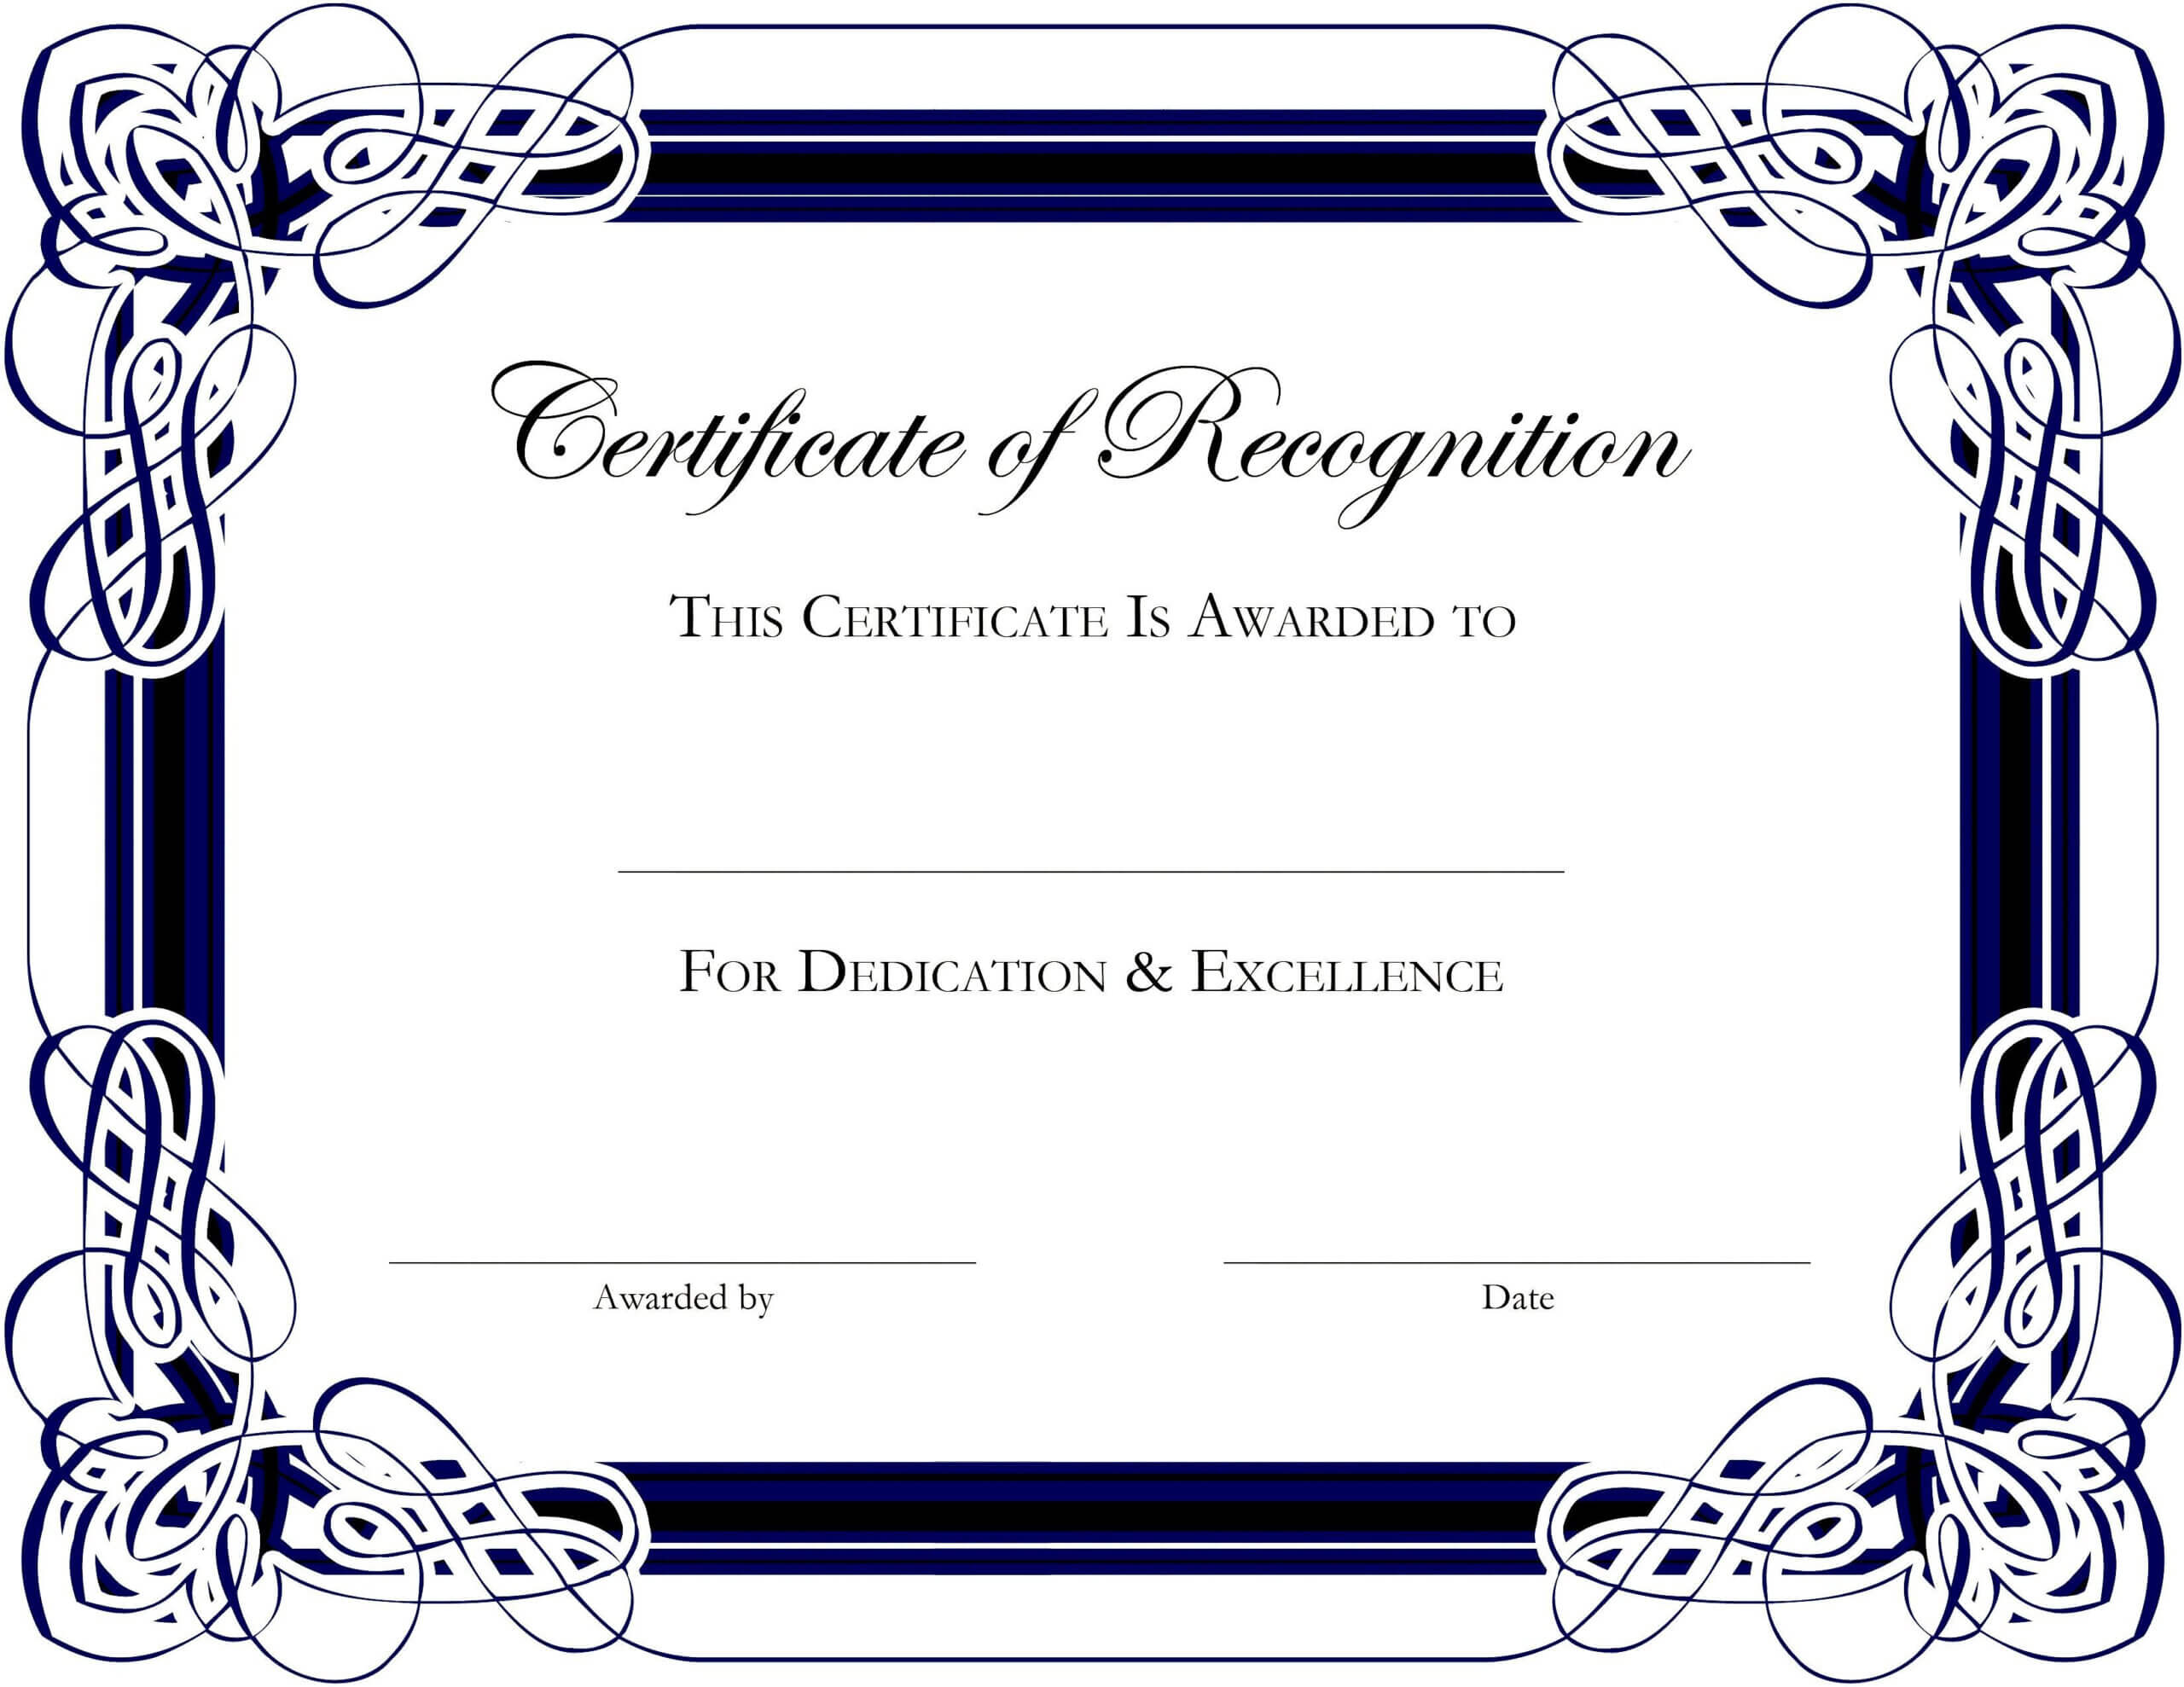 Award Templates For Microsoft Publisher | Besttemplate123 Regarding Template For Certificate Of Appreciation In Microsoft Word